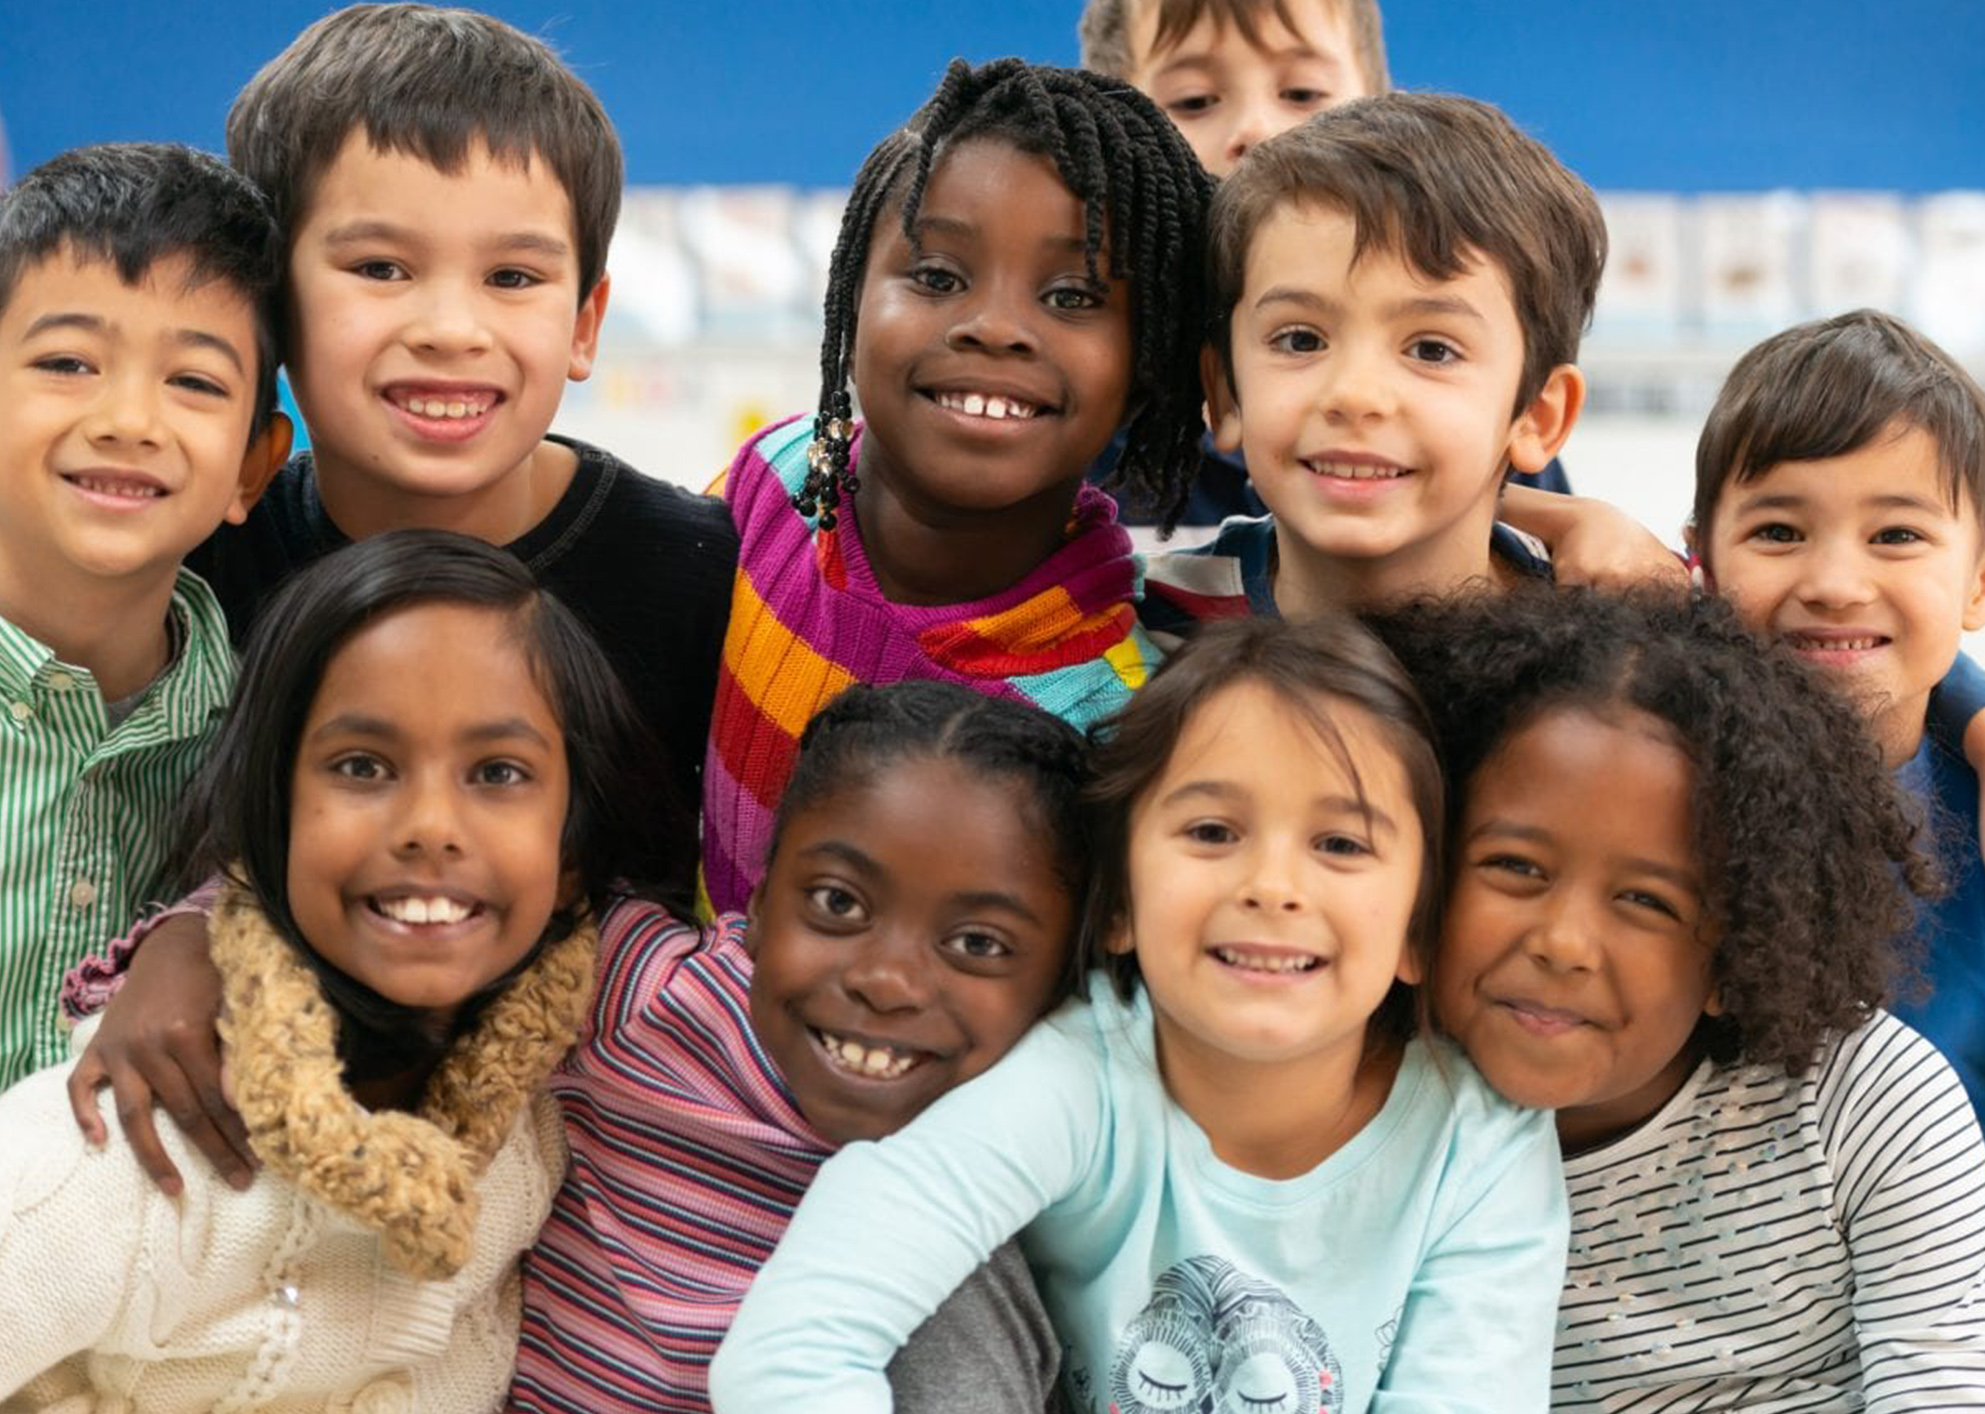 multicultural group of first graders smiling